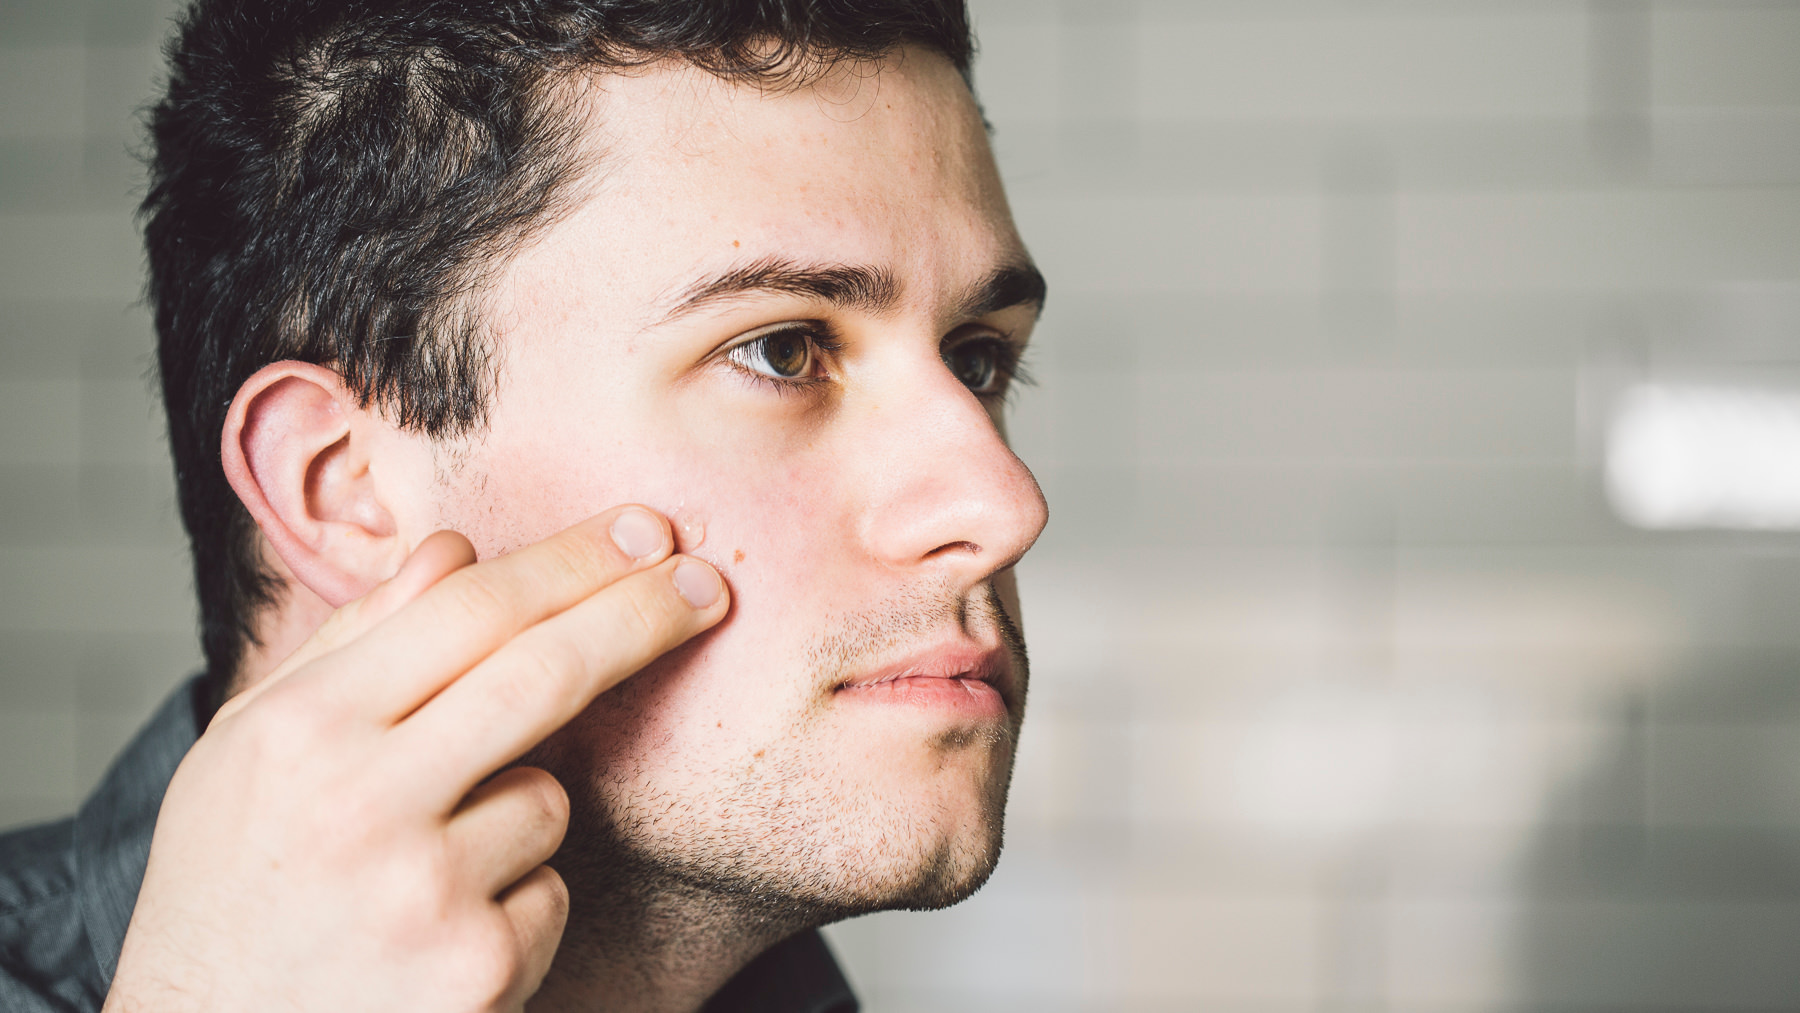 A man applying product on his face